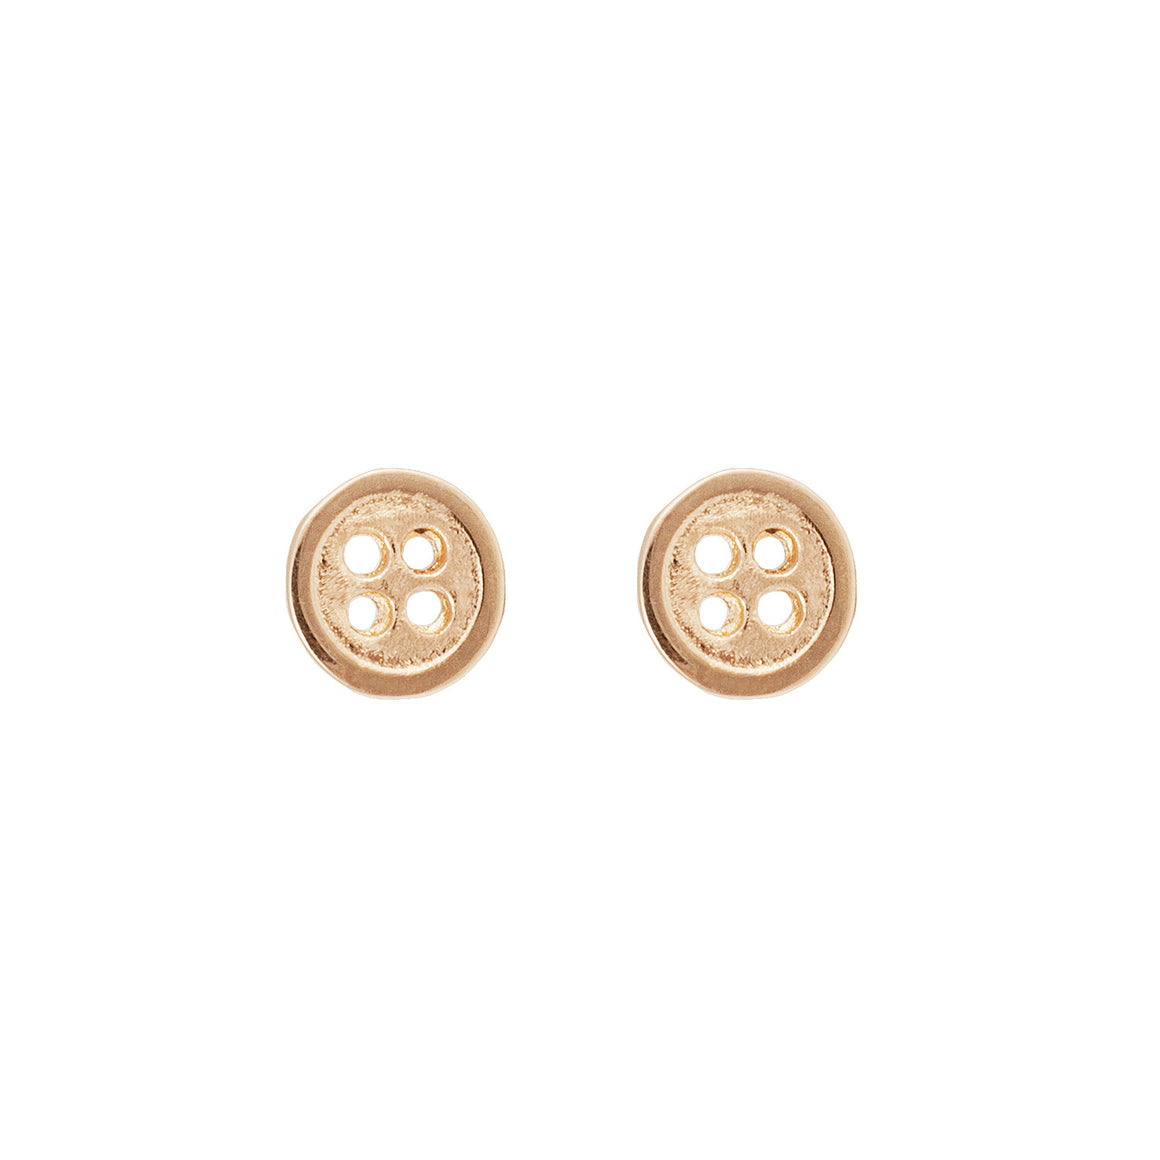 Button Earrings in 14ct Gold